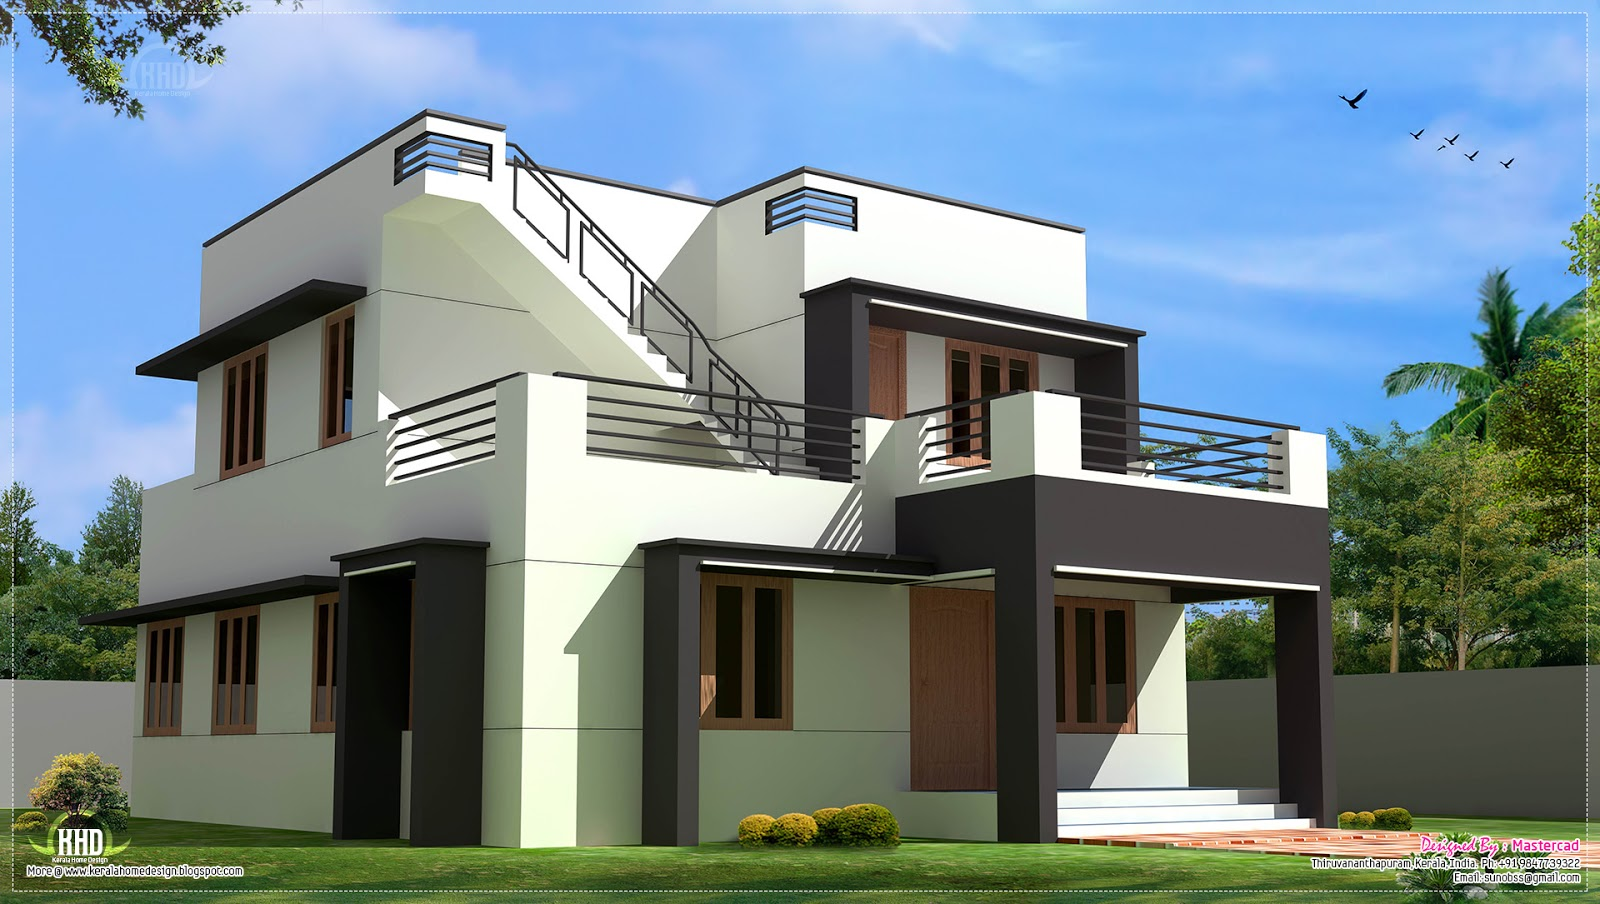 Modern house design in 1700 kerala home design for Contemporary home blueprints